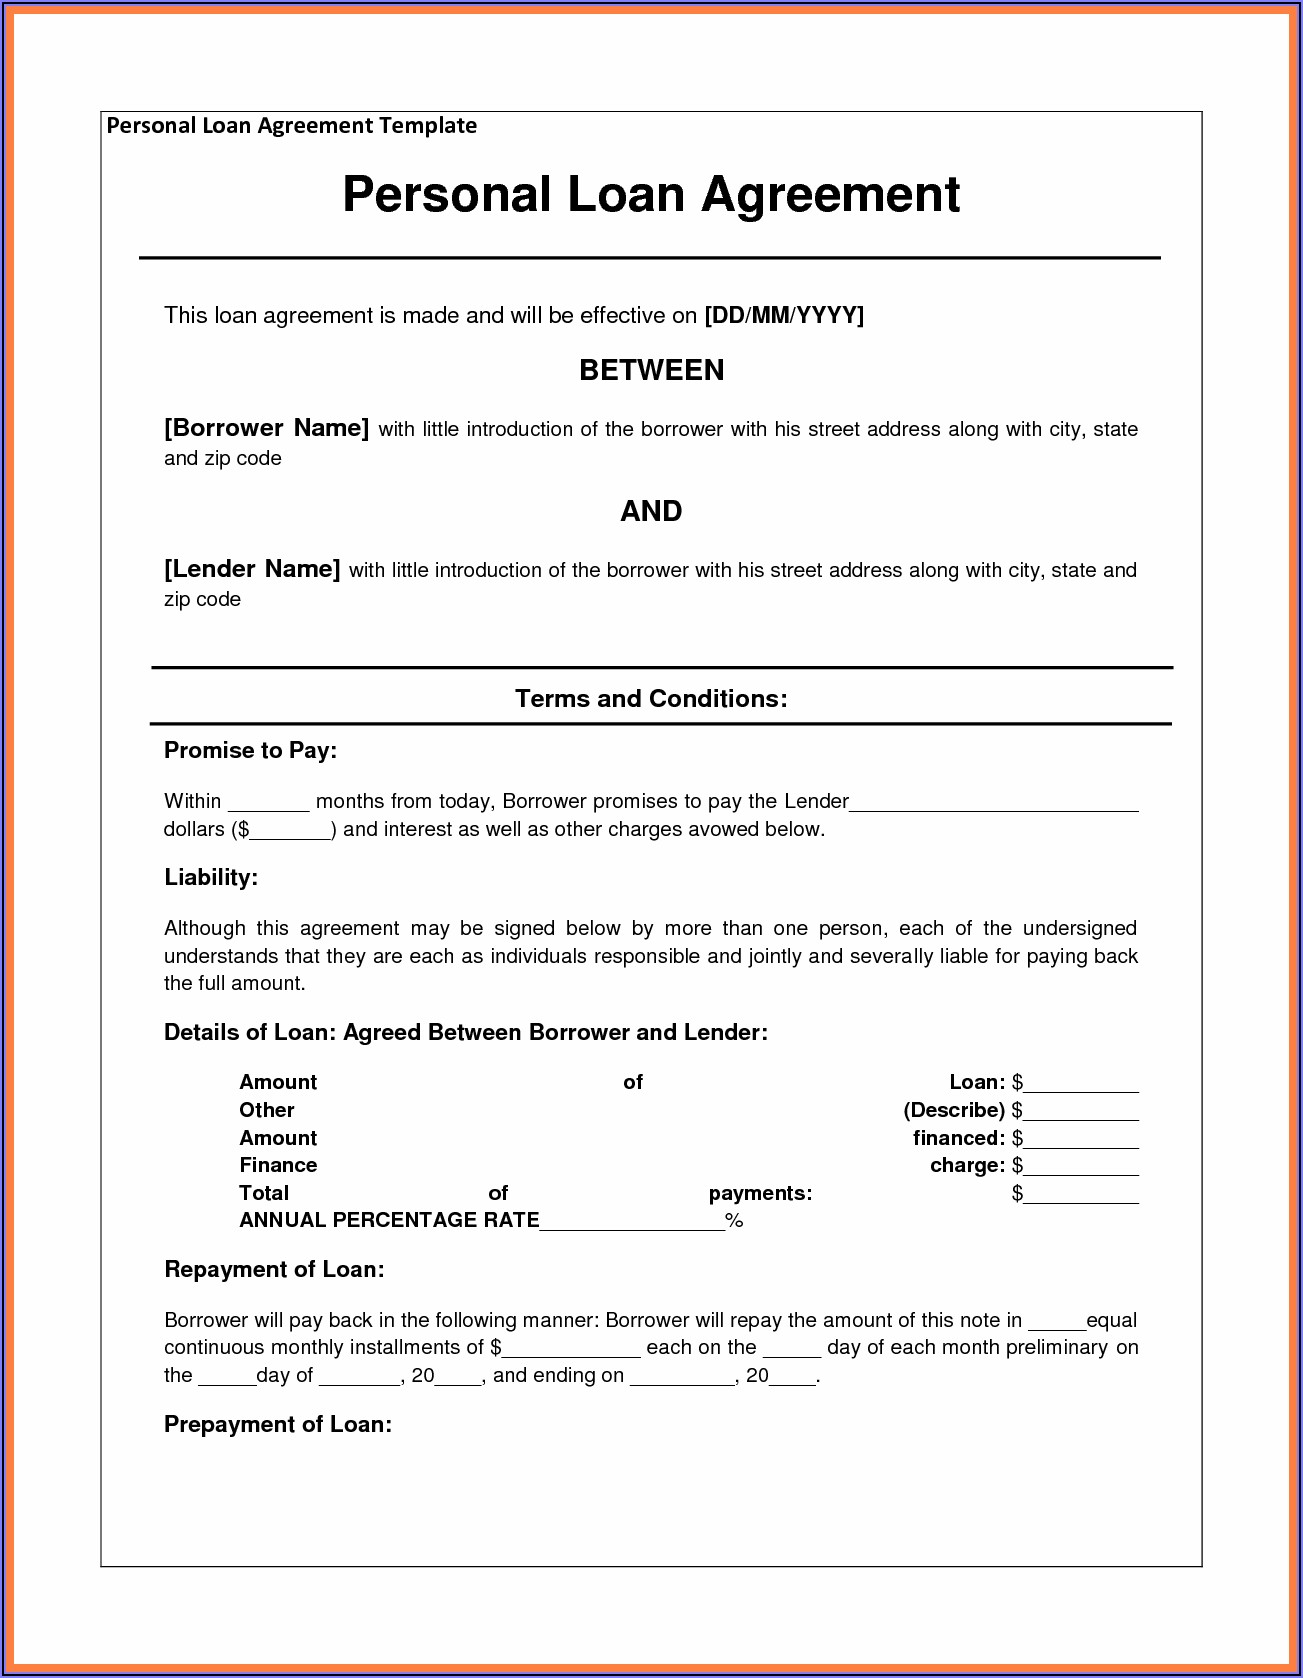 Sample Promissory Notes For Personal Loans To Family And Friends